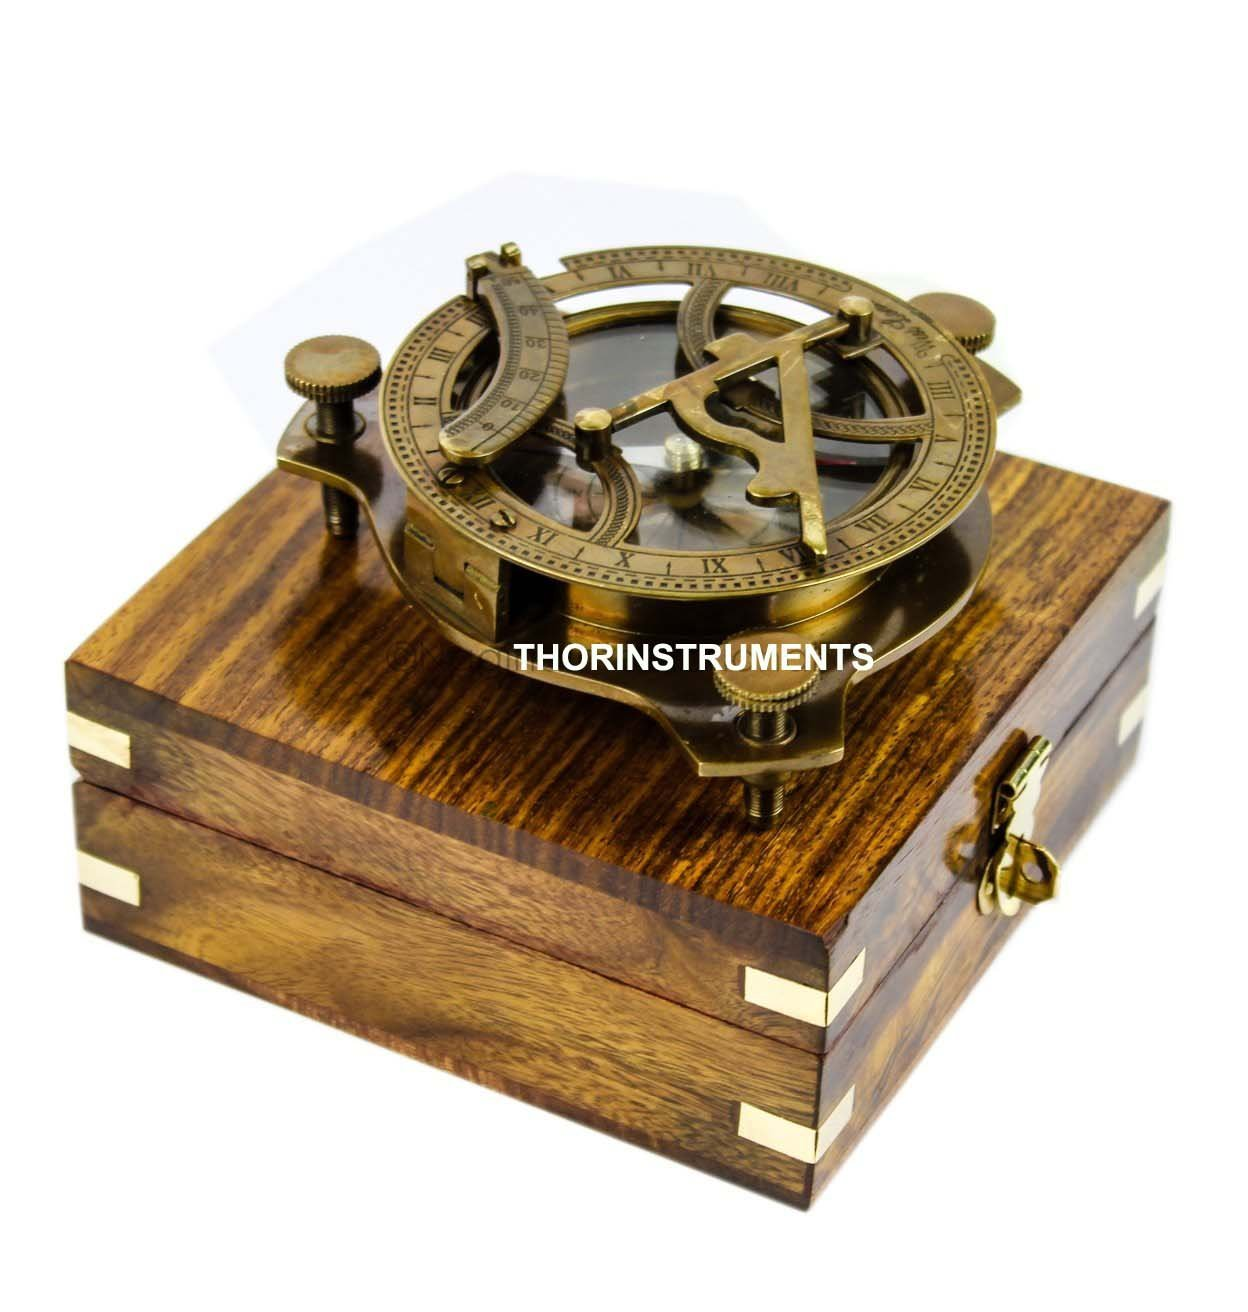 THORINSTRUMENTS (with device) 5'' Triangular Beautiful Nautical Sundial Compass With Level Meter Encased In Genuine Rosewood Anchor Inlaid Case Maritime Decor Gifts